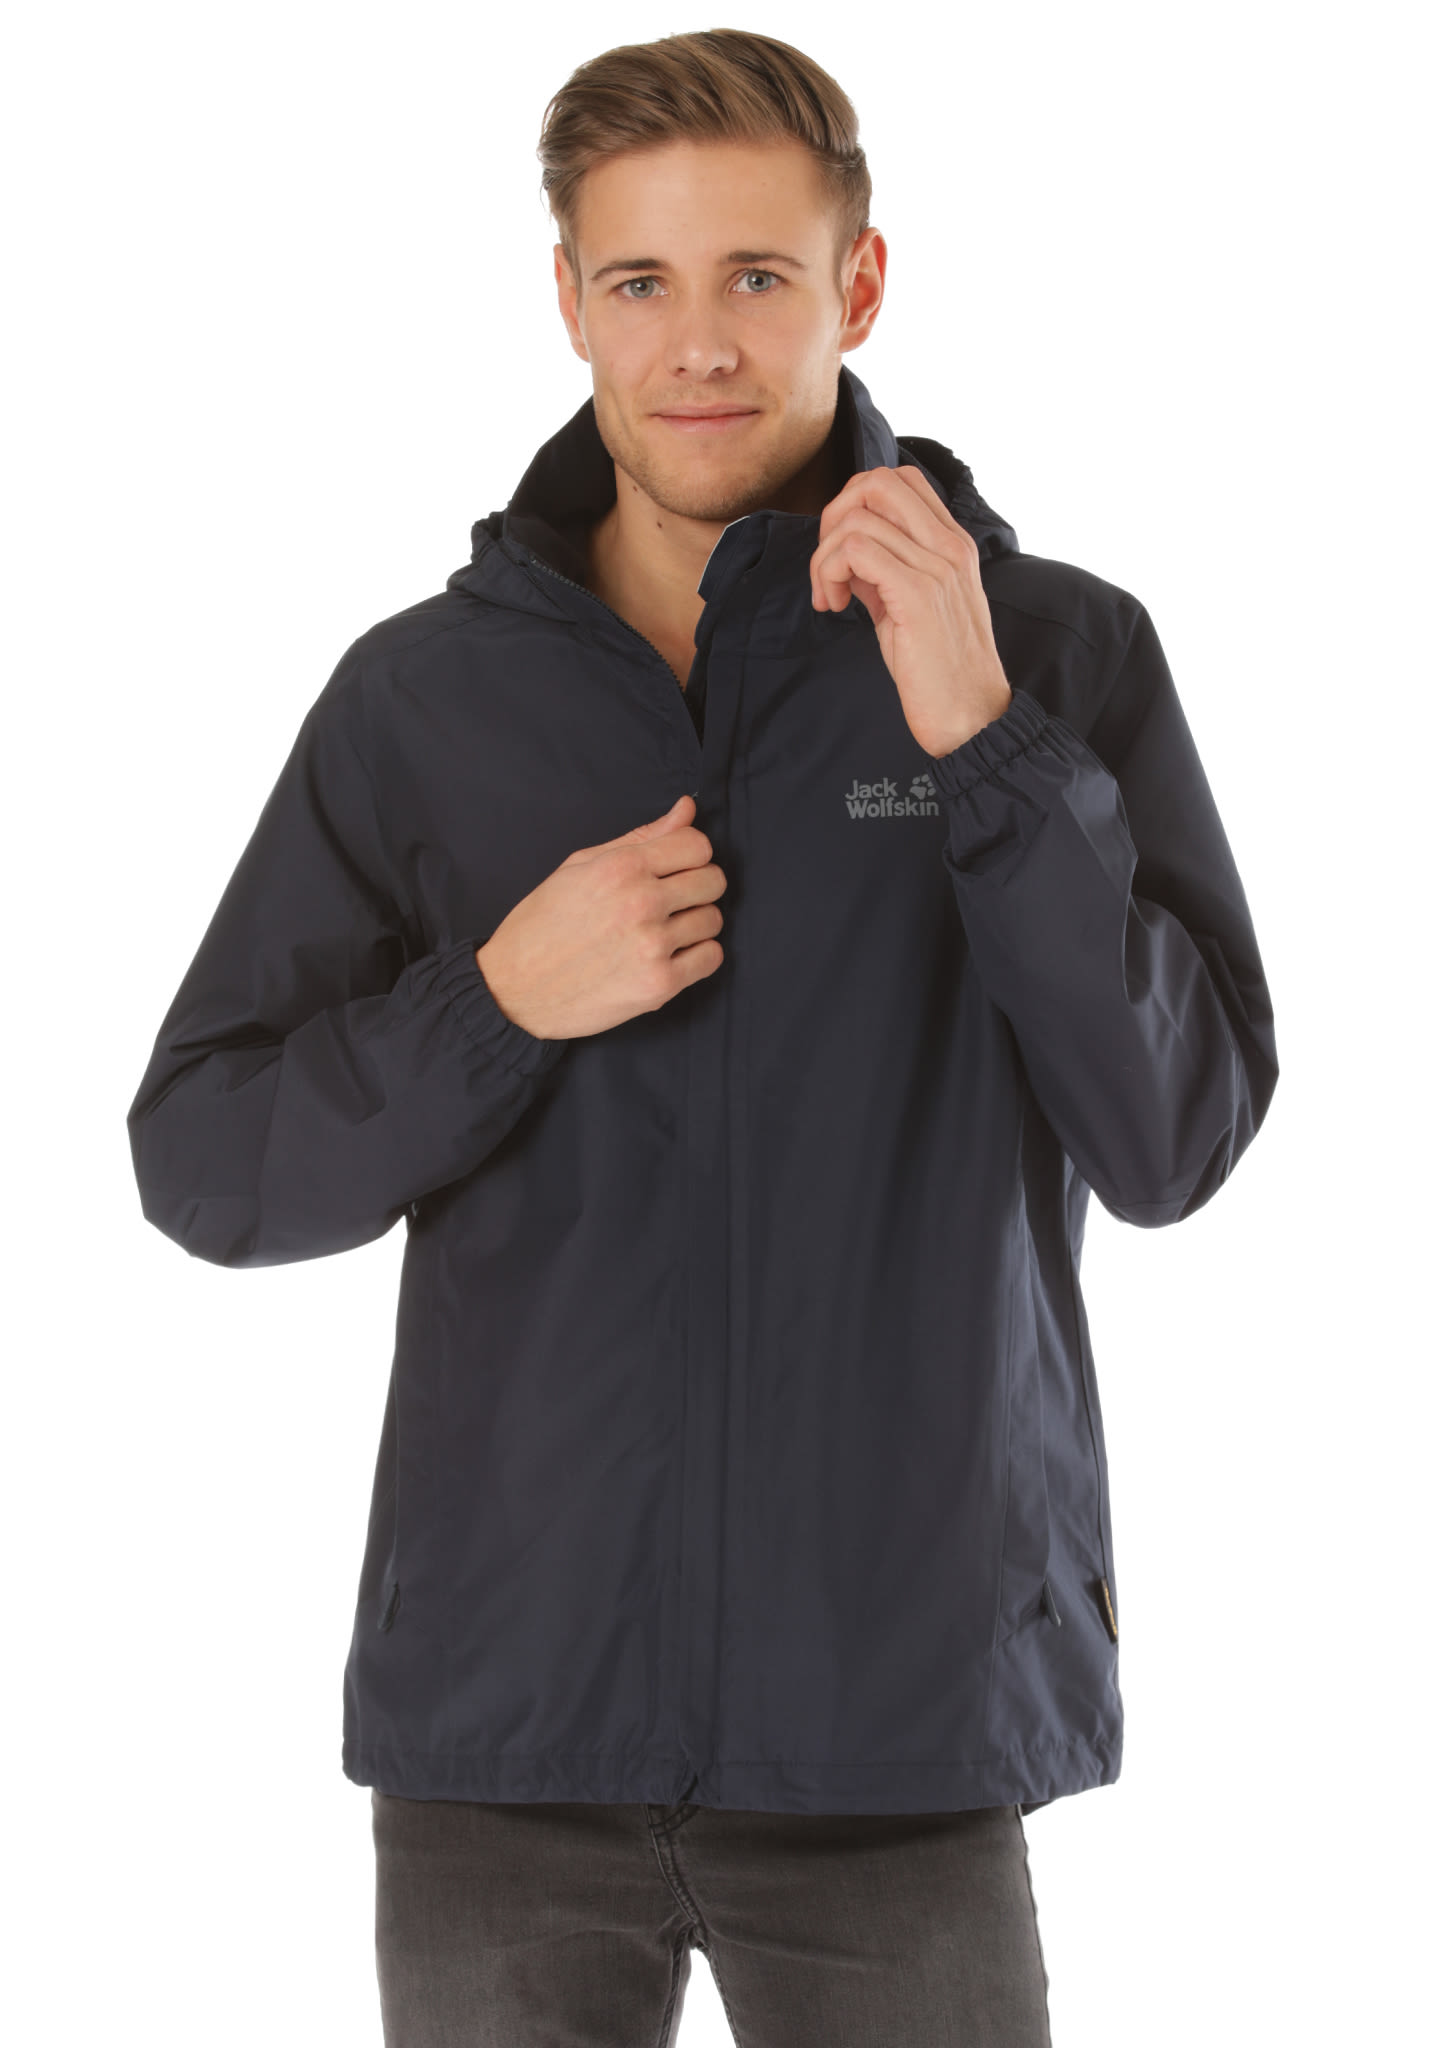 info for f27ac 46615 Jack Wolfskin Stormy Point - Outdoor Jacket for Men - Blue